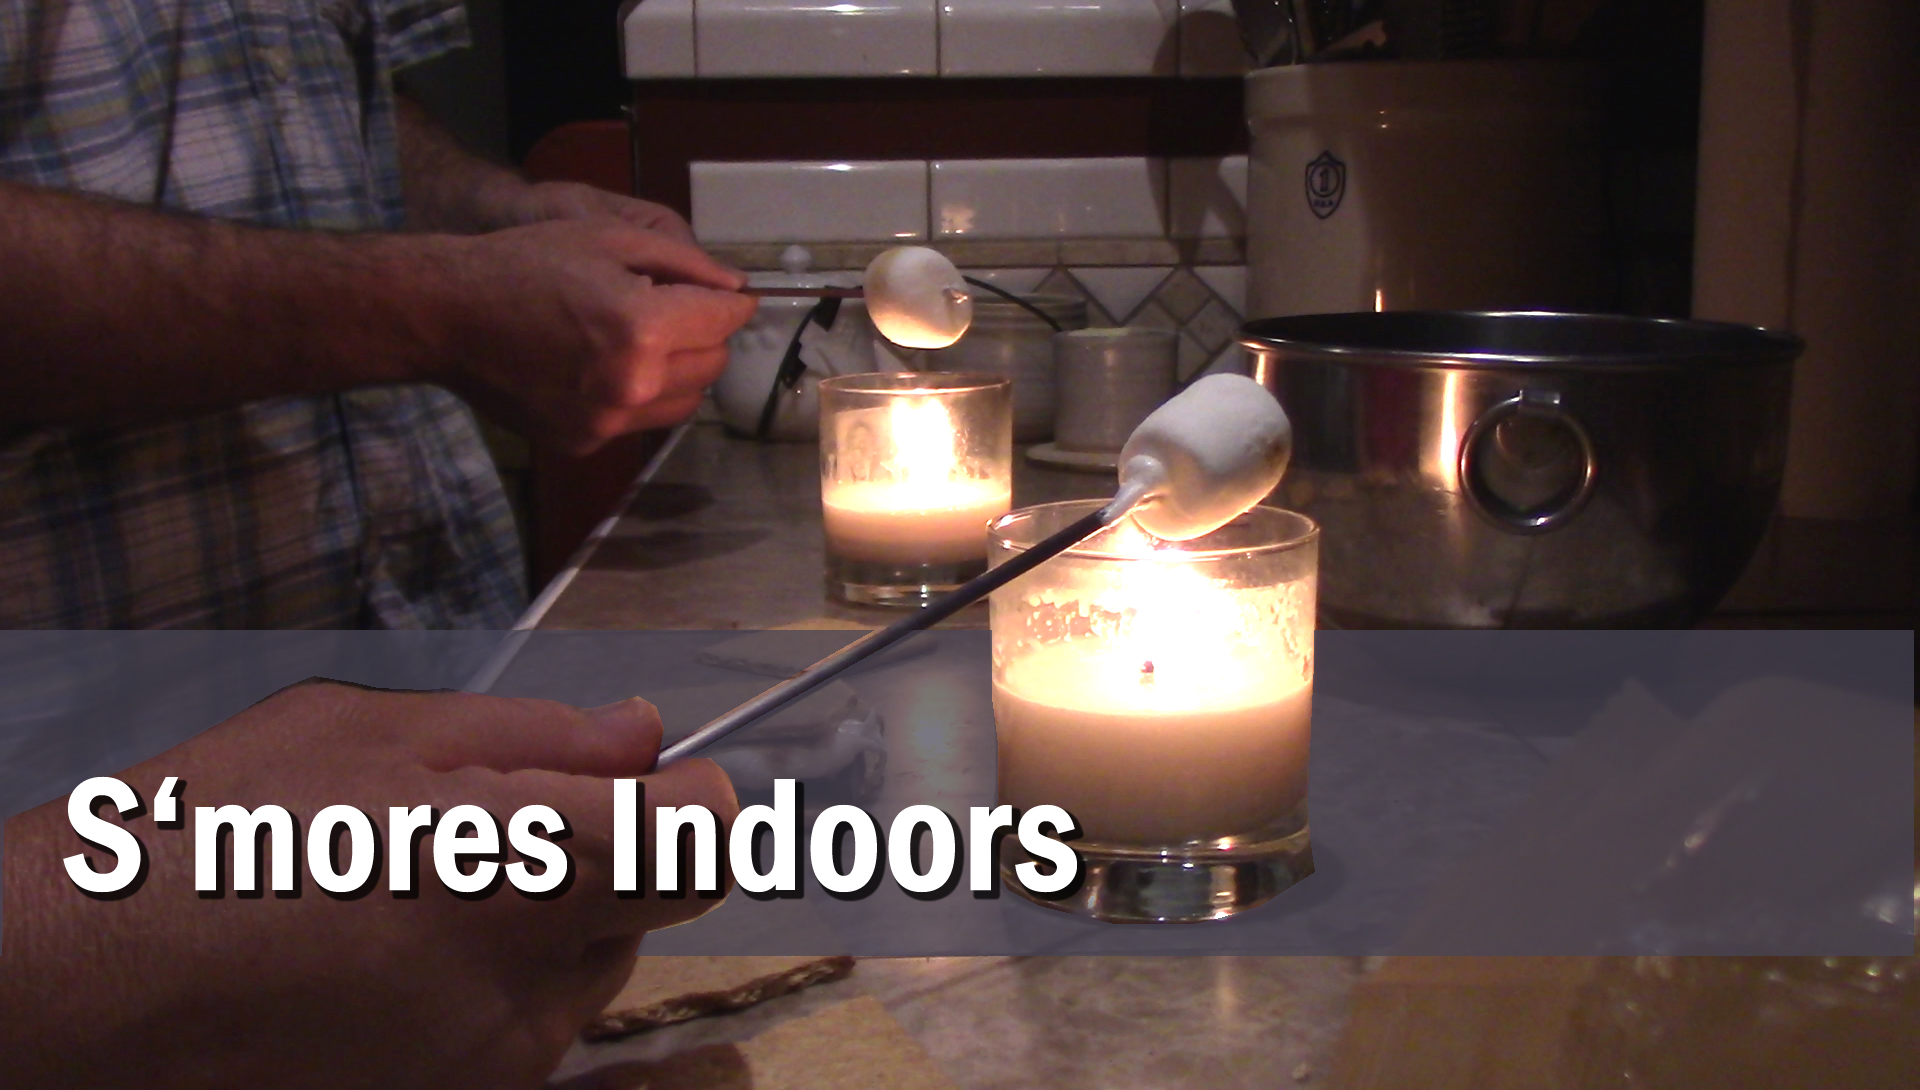 S'more Indoor